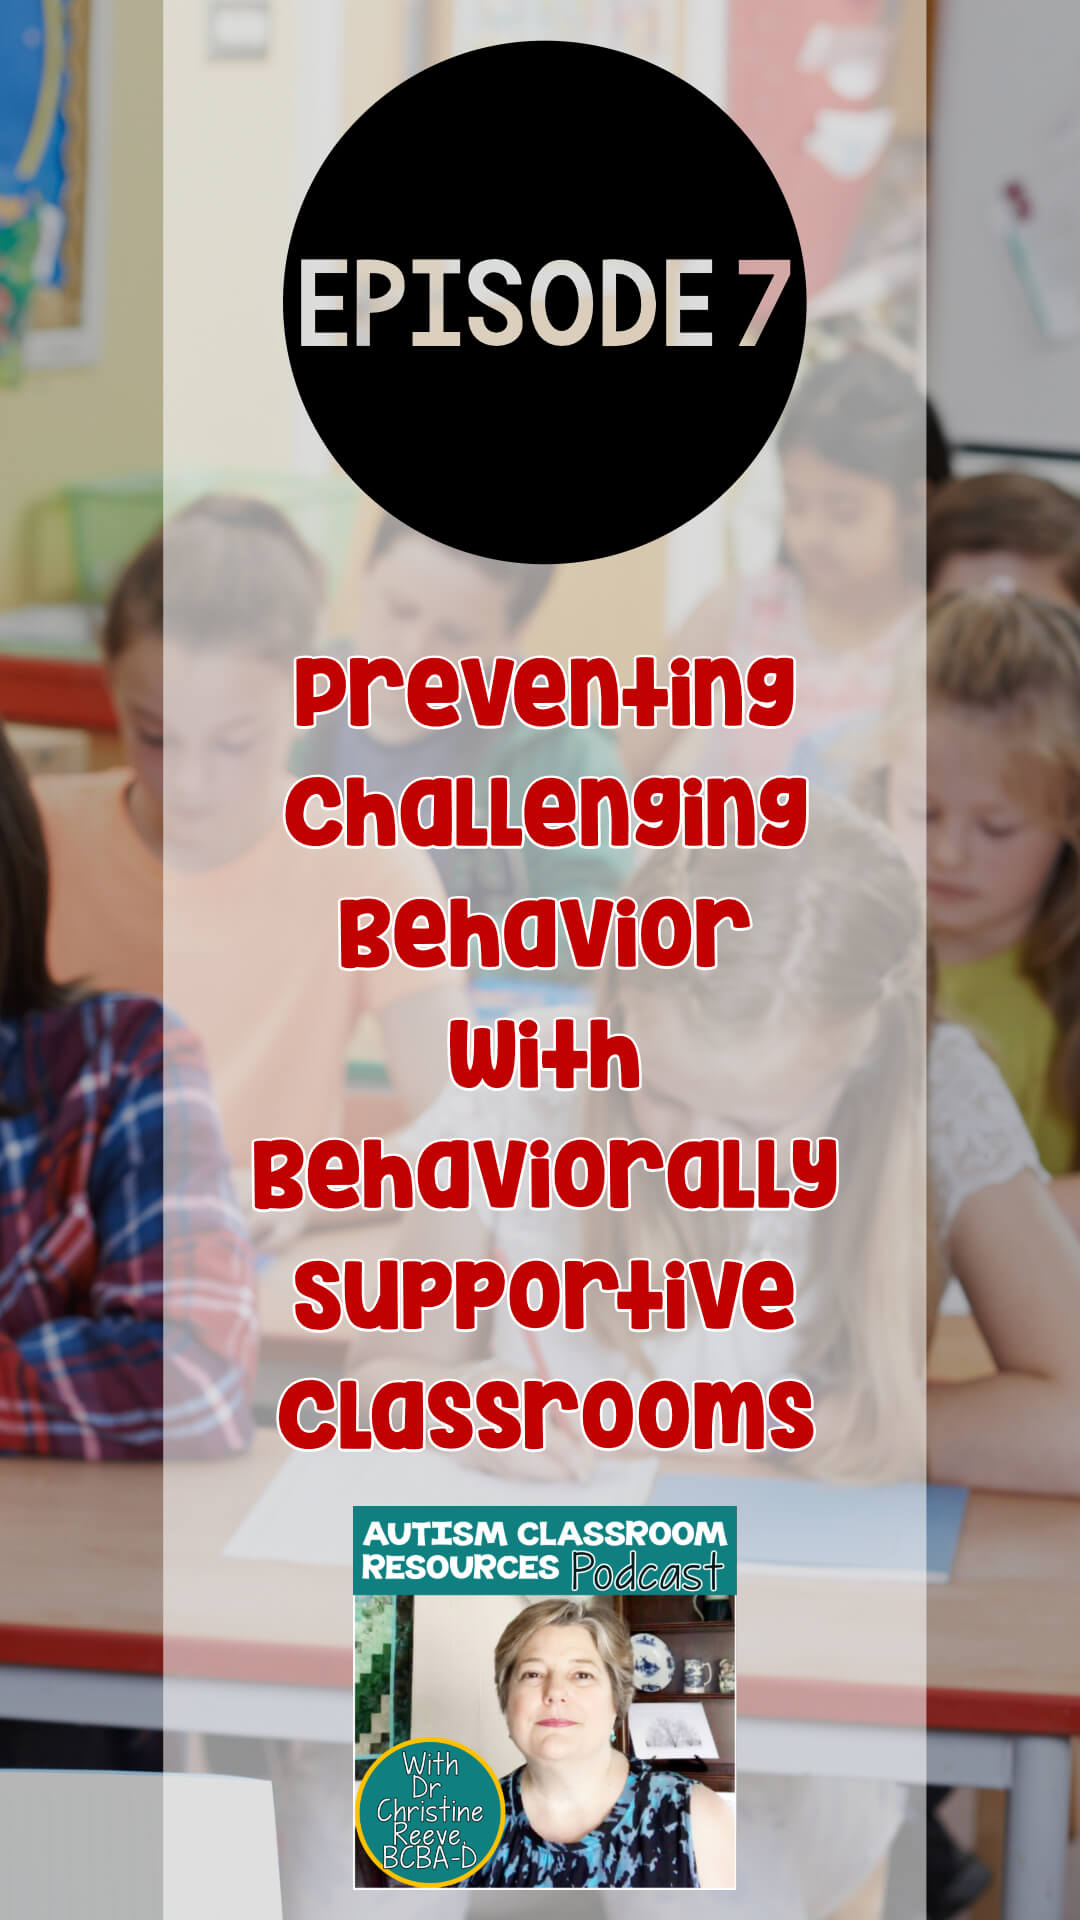 Are you struggling with challenging behavior in your classroom? Looking for behavior management strategies? Find out strategies you can put in place to prevent challenging behavior from happening.  #behaviormanagement #pbis